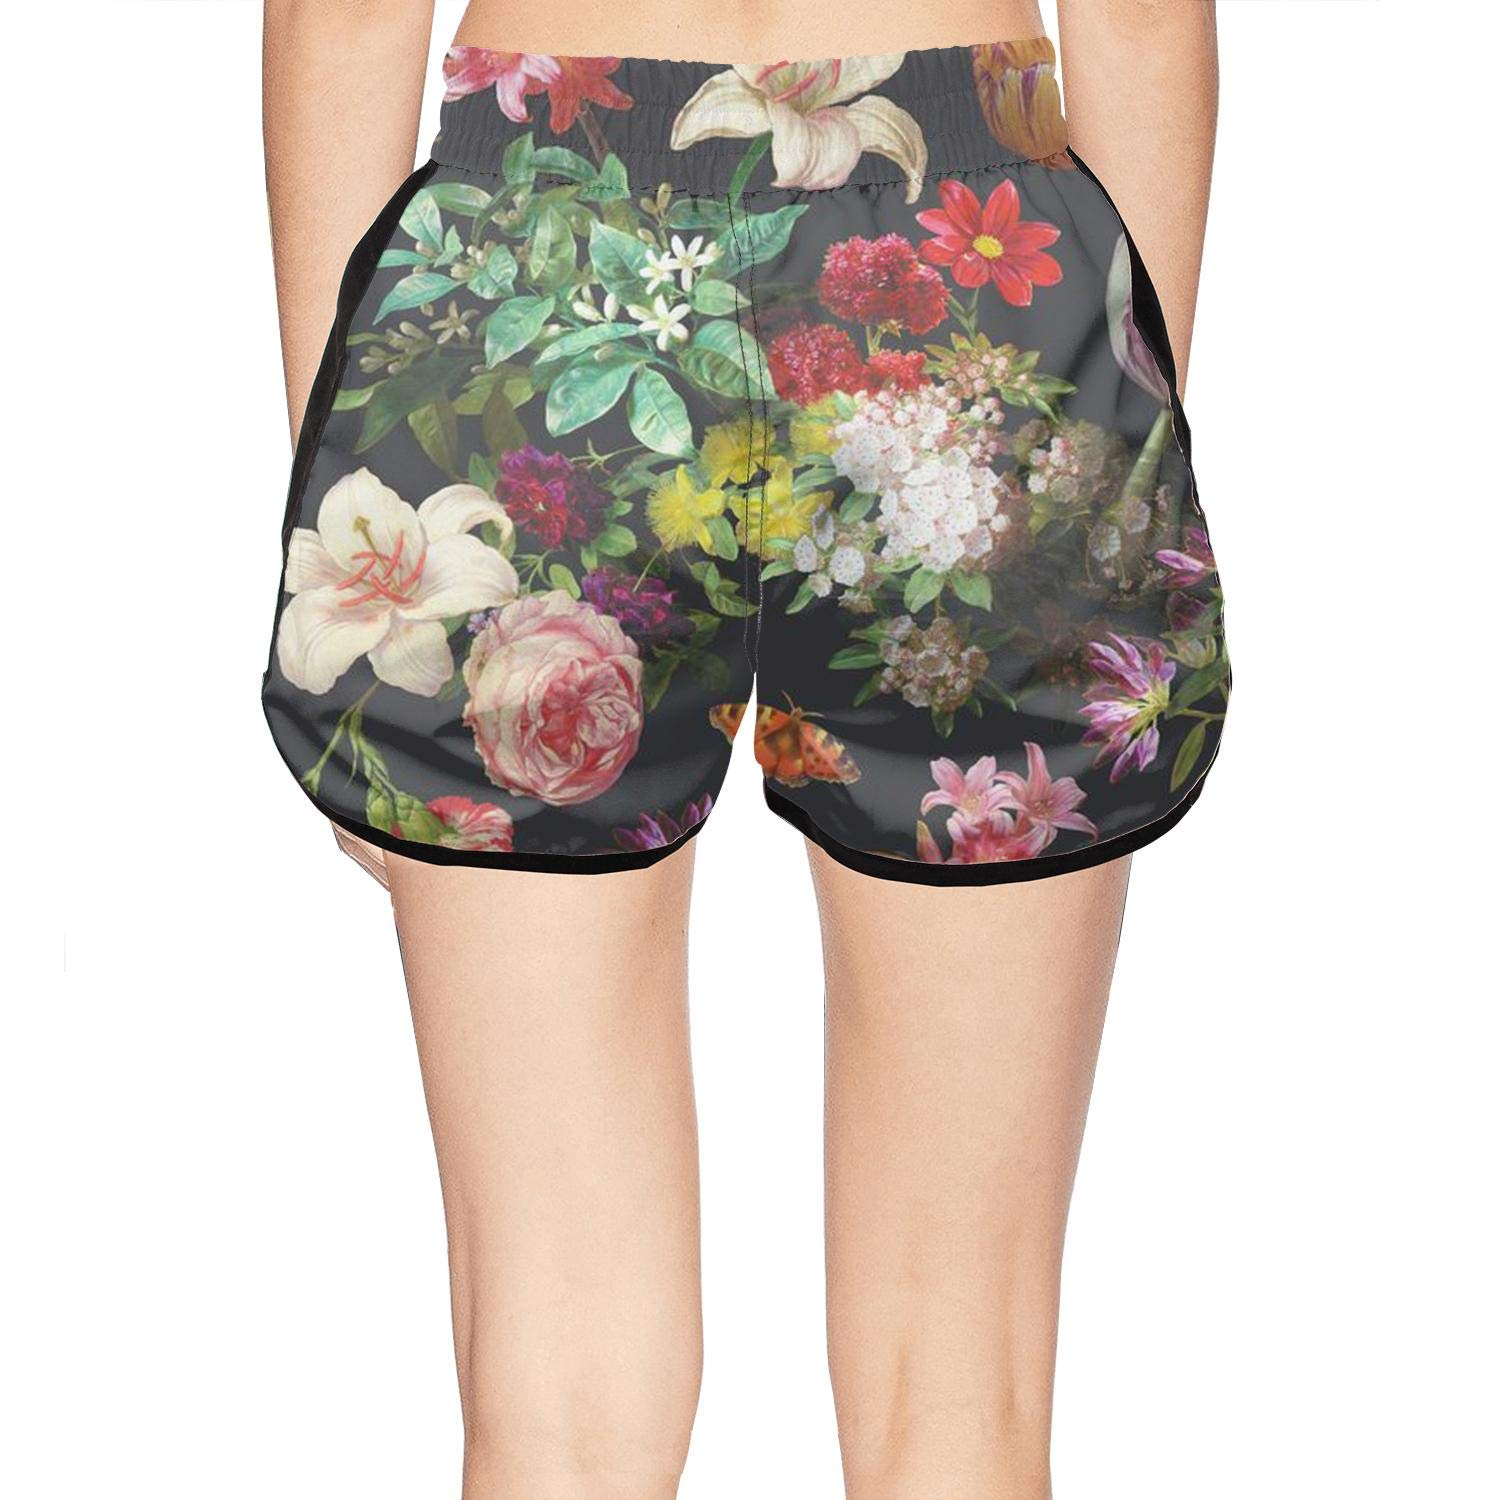 XULANG Woman Best Floral Poster Swimming Trunks Swim Street Swimwear Quick-Dry Boardshorts by XULANG (Image #2)